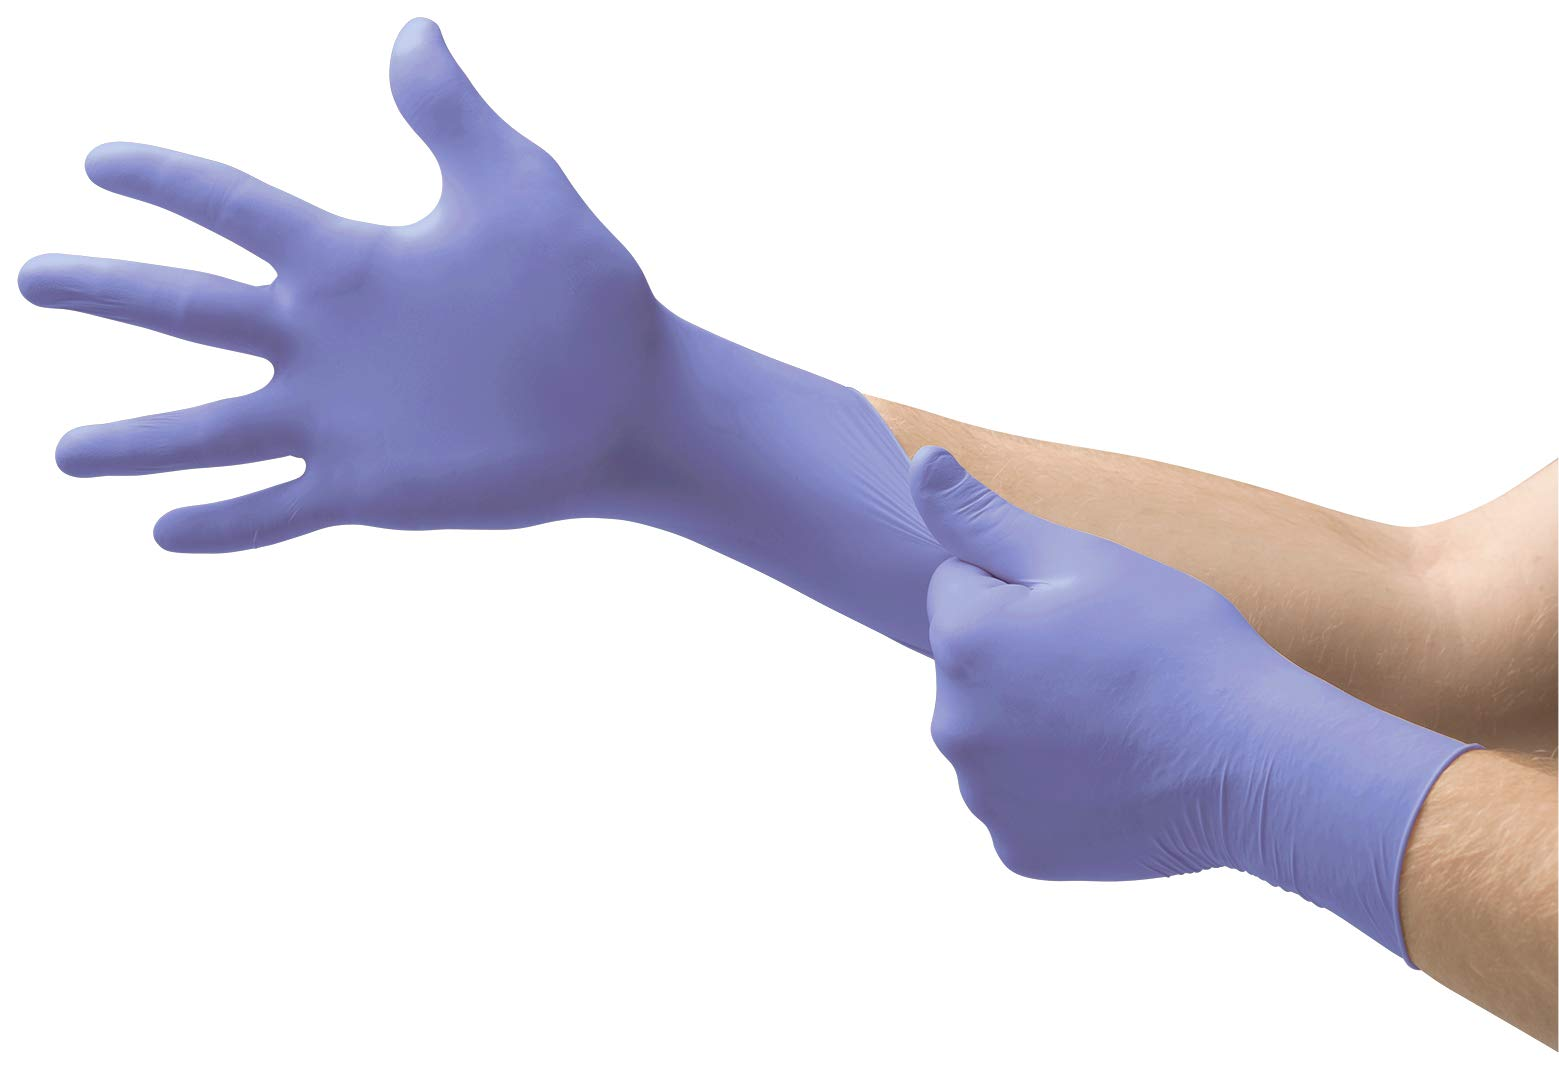 Microflex SU-690 Disposable Nitrile Gloves, Latex-Free, Powder-Free Glove for Cleaning, Mechanics, Automotive, Industrial, or Medical applications, Violet, Size Medium, Case of 1000 Units by Ansell